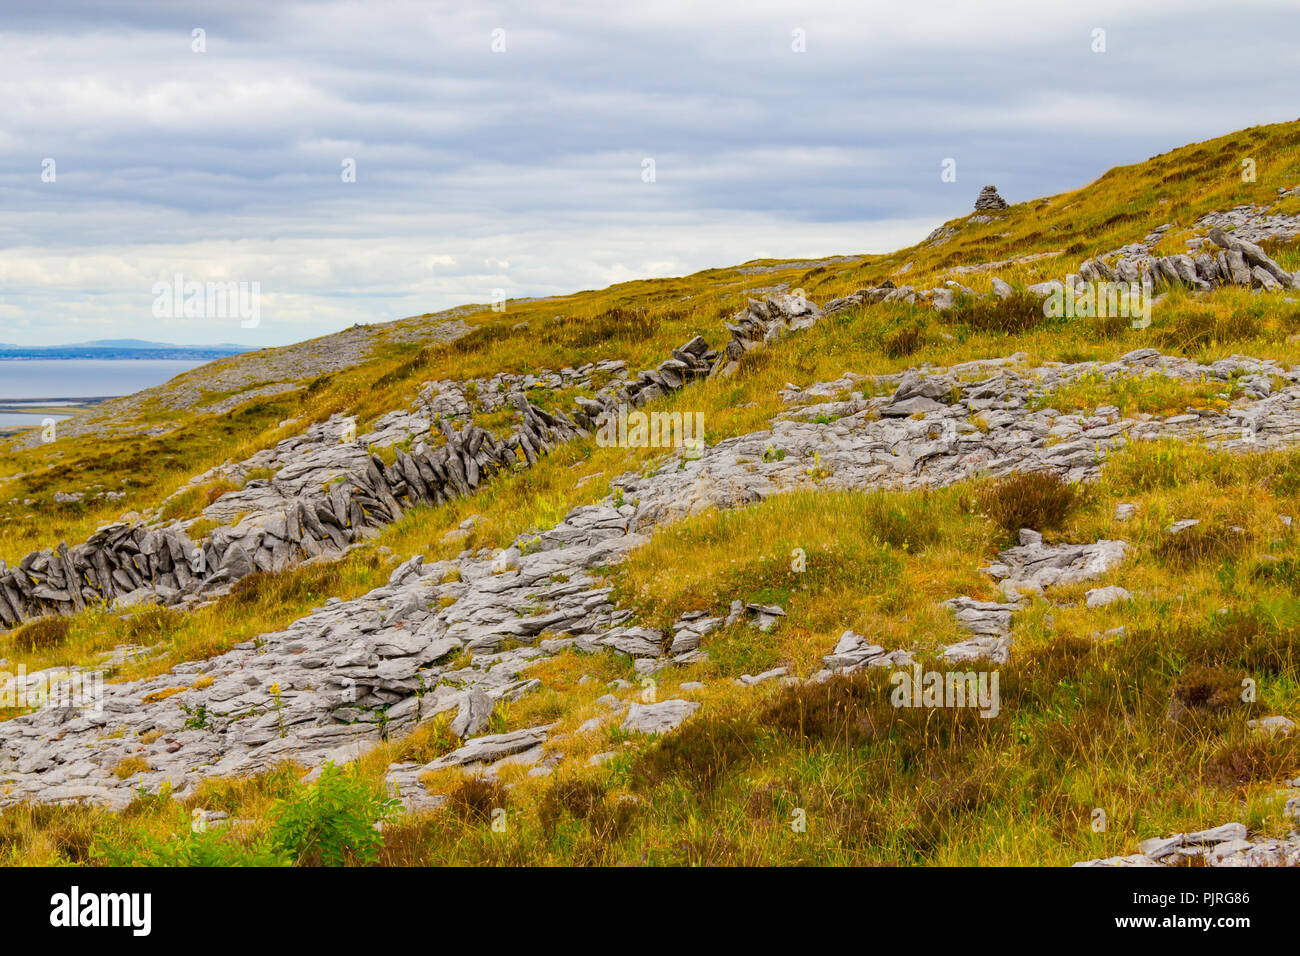 Mountain with rocks and vegetation in Ballyvaughan, Ireland - Stock Image